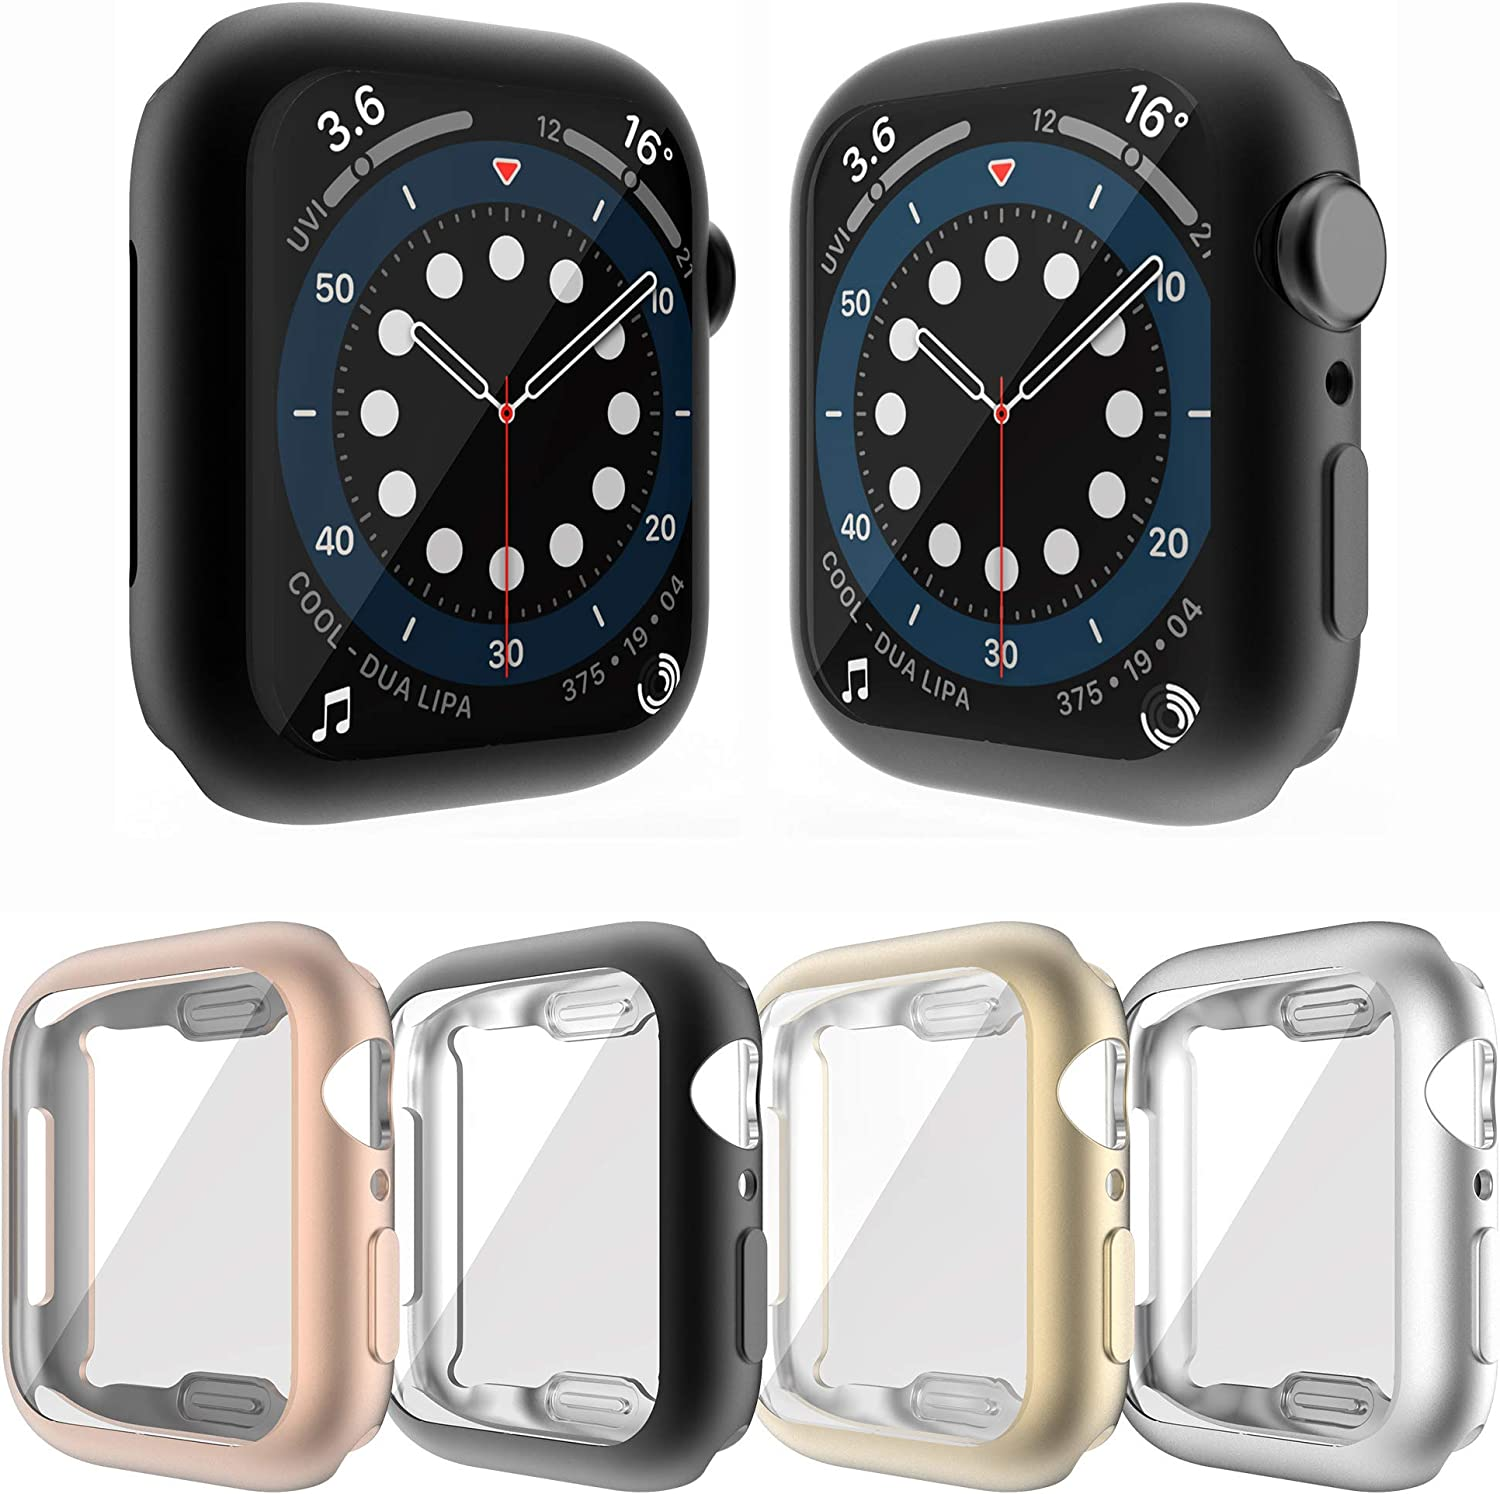 YUVIKE Case Compatible with Apple Watch SE Series 6 5 4 44mm Screen Protector, 4 Packs All Around Cover Flexible TPU Matte Bumper Frame (Black+Silver+Gold+Rose Gold, 44mm)